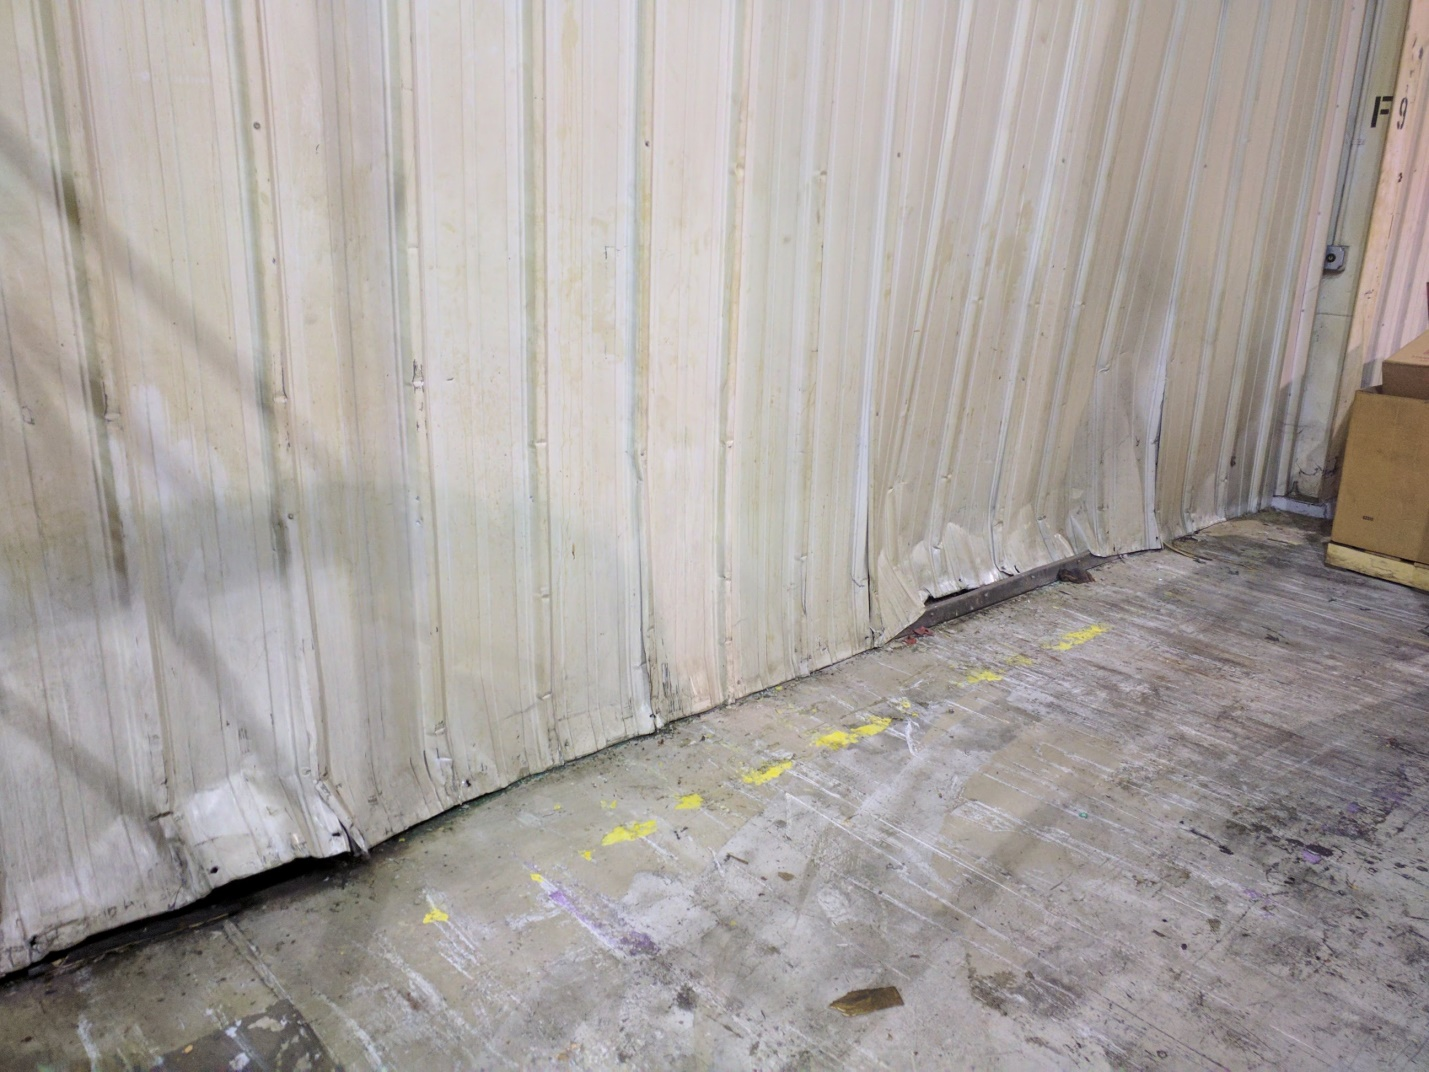 Interior damage to siding from forklift traffic